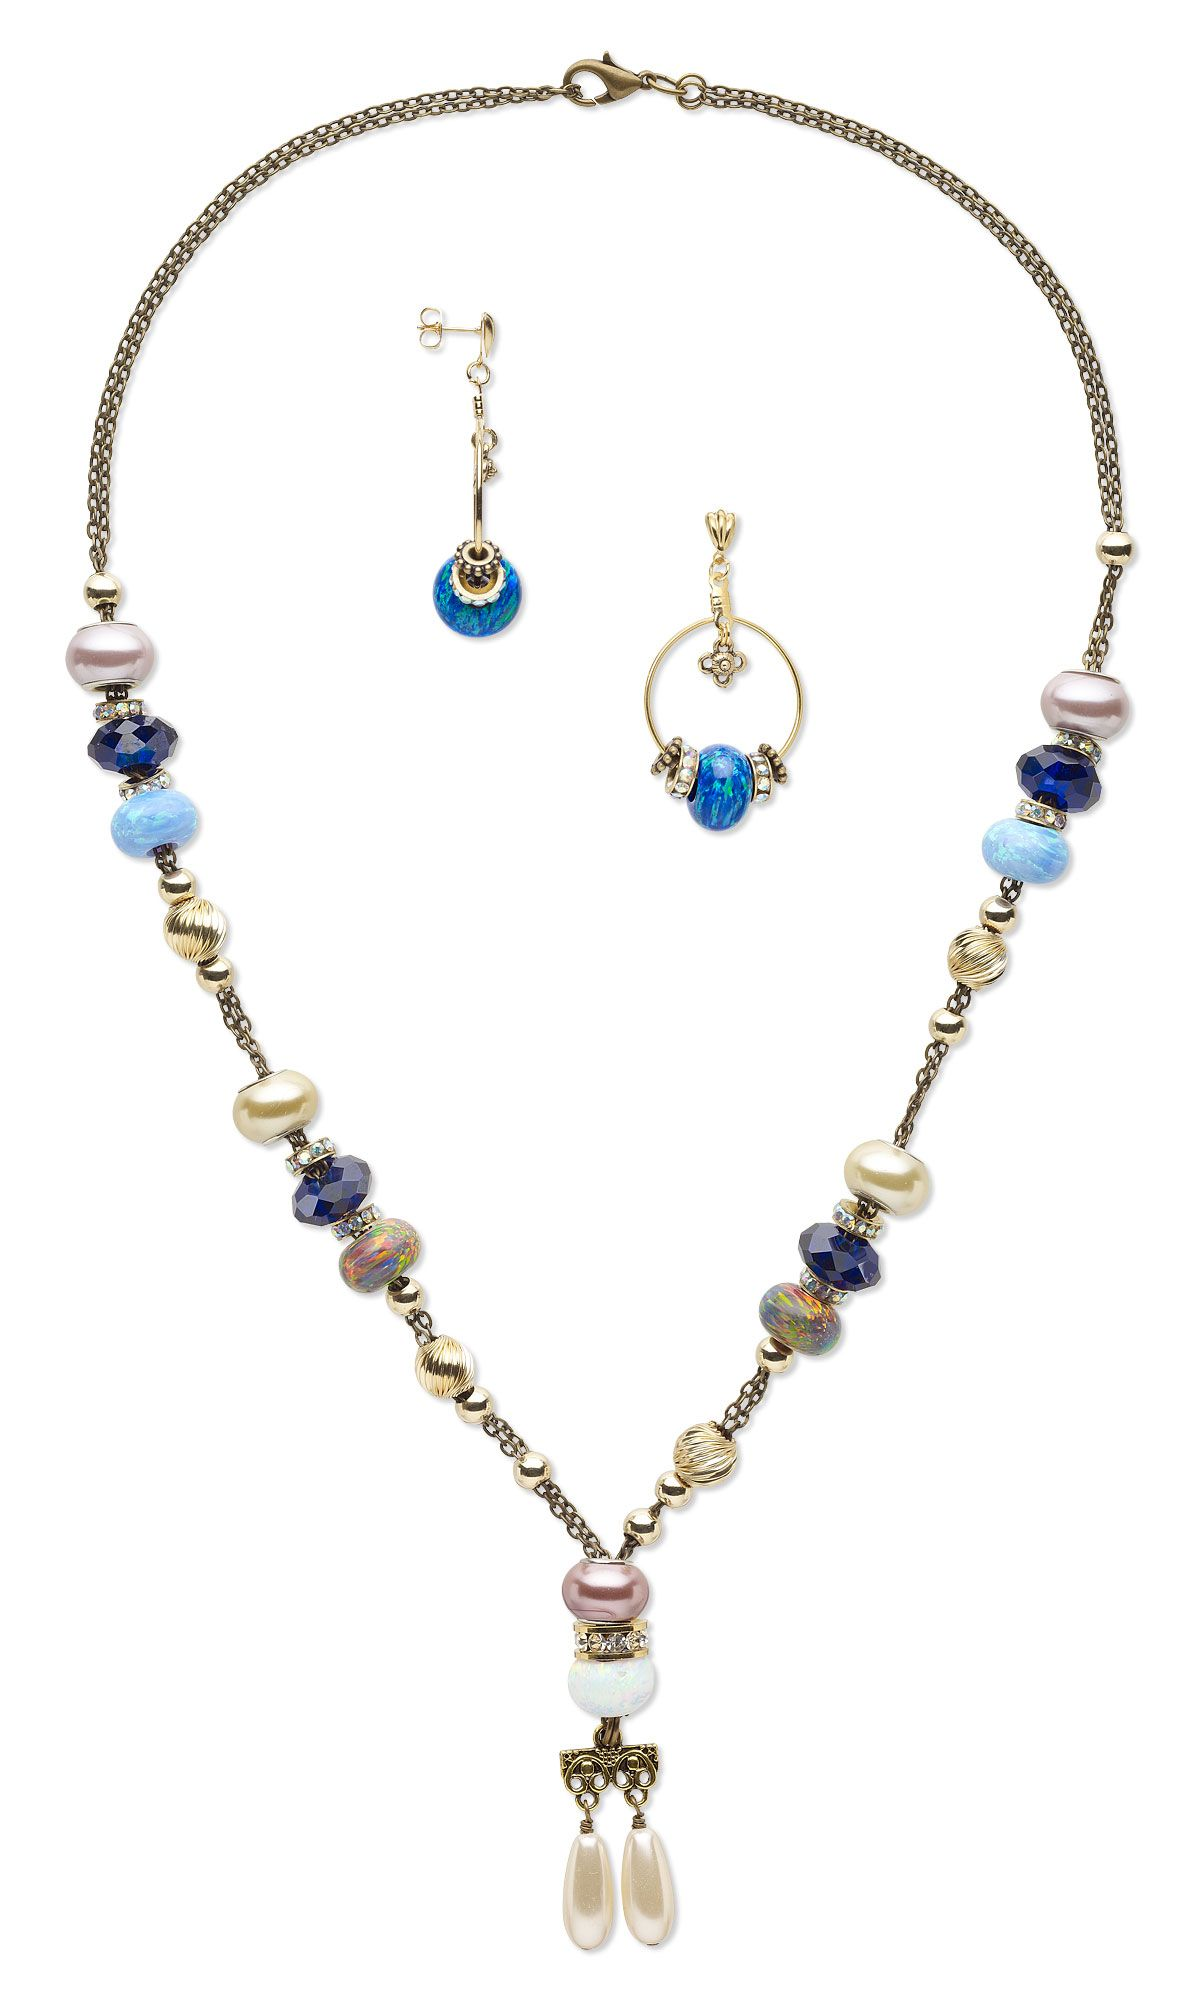 17ecaf98015bb Jewelry Design - Double-Strand Necklace and Earring Set with Dione ...